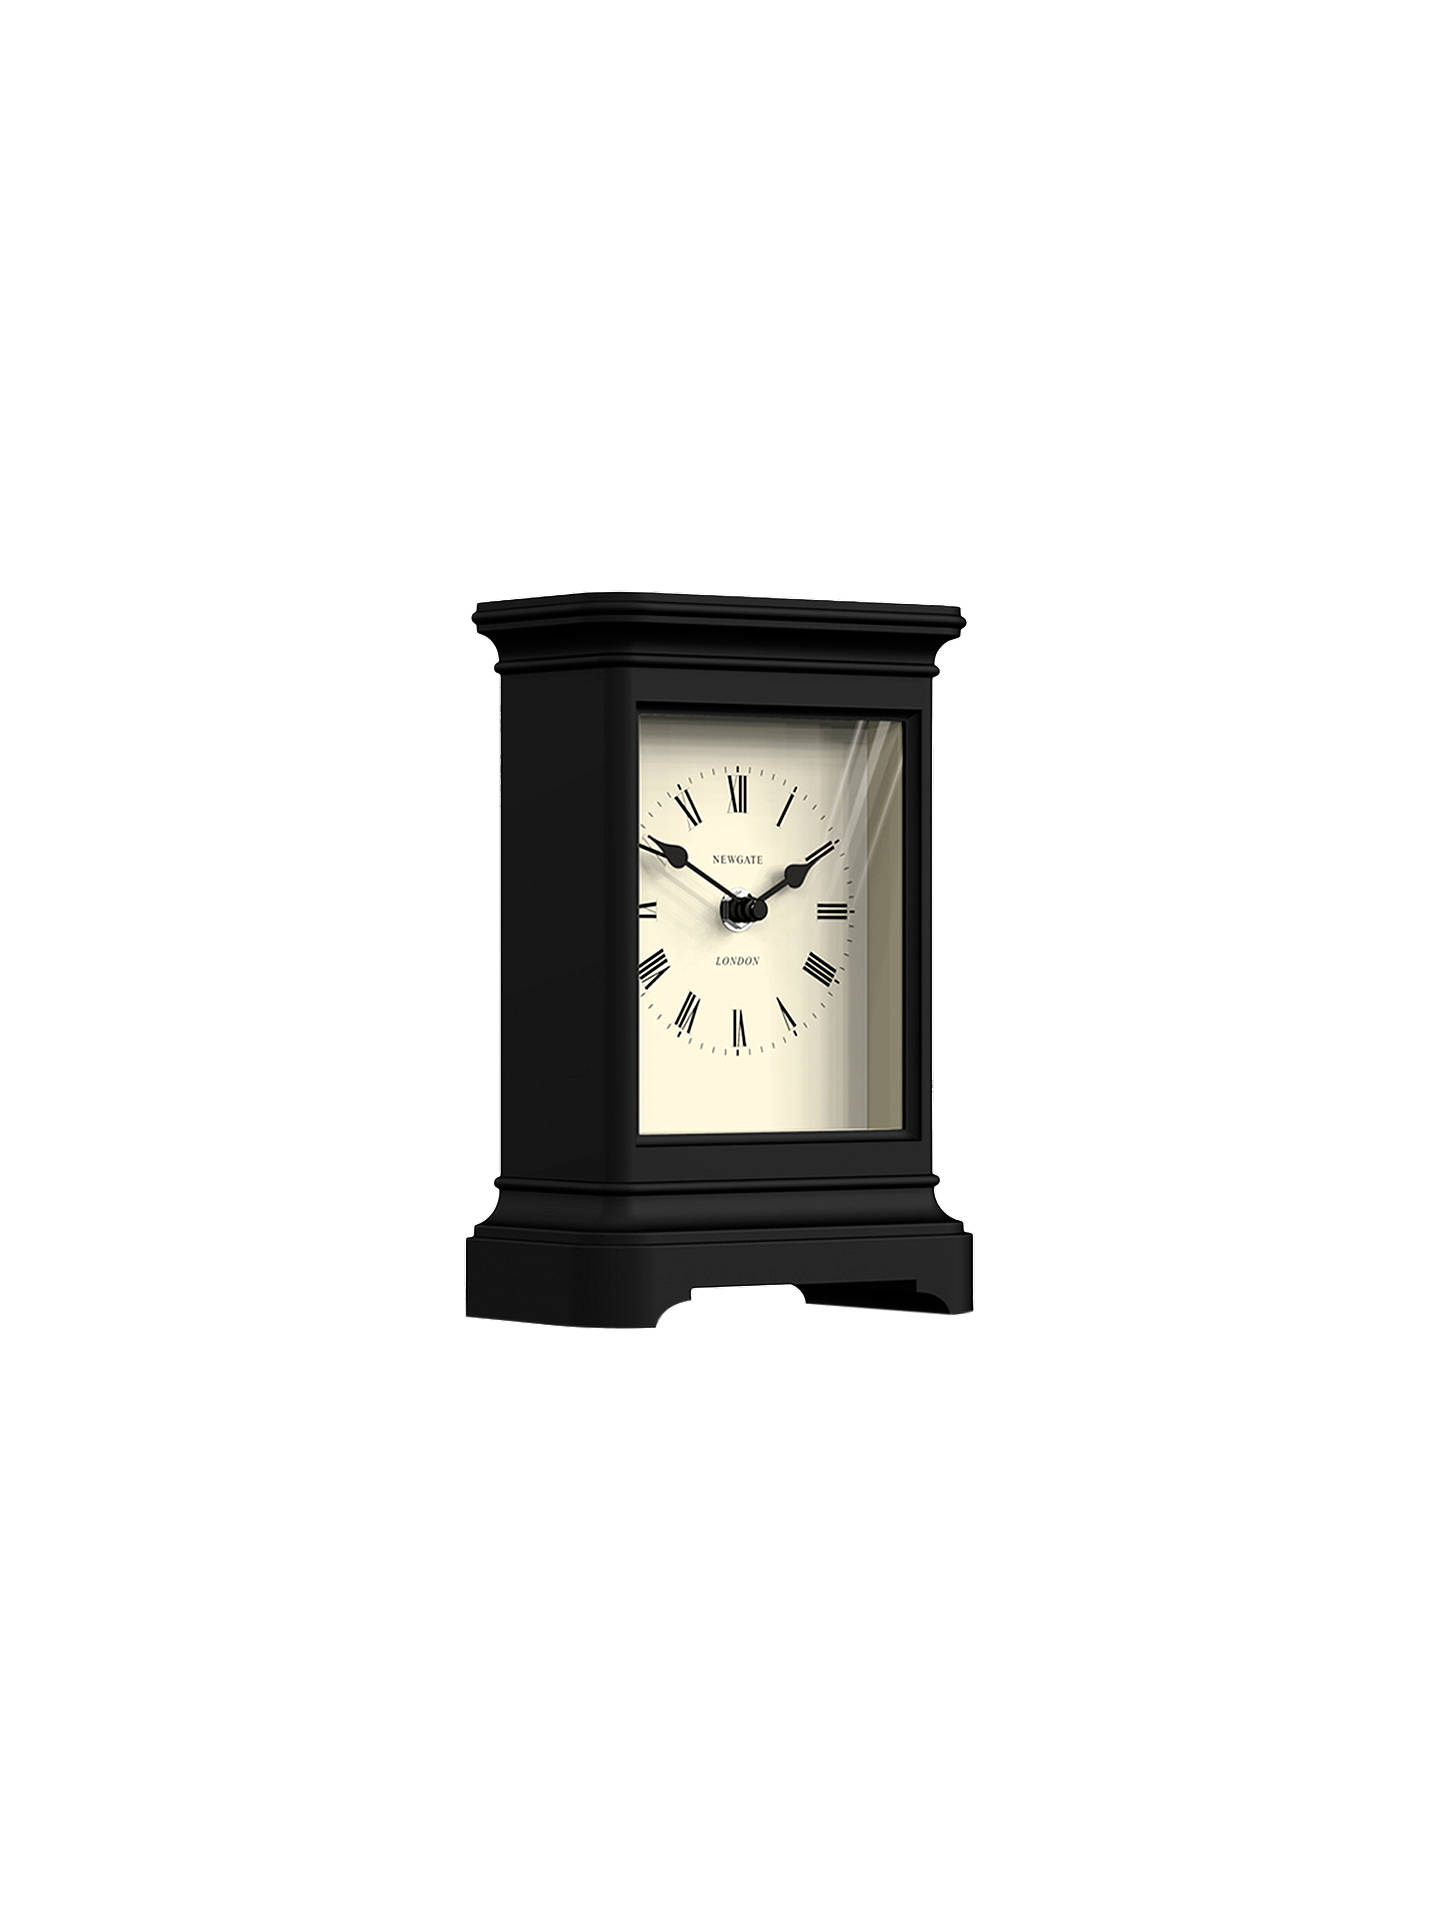 BuyNewgate Library Mantel Clock, Black Online at johnlewis.com